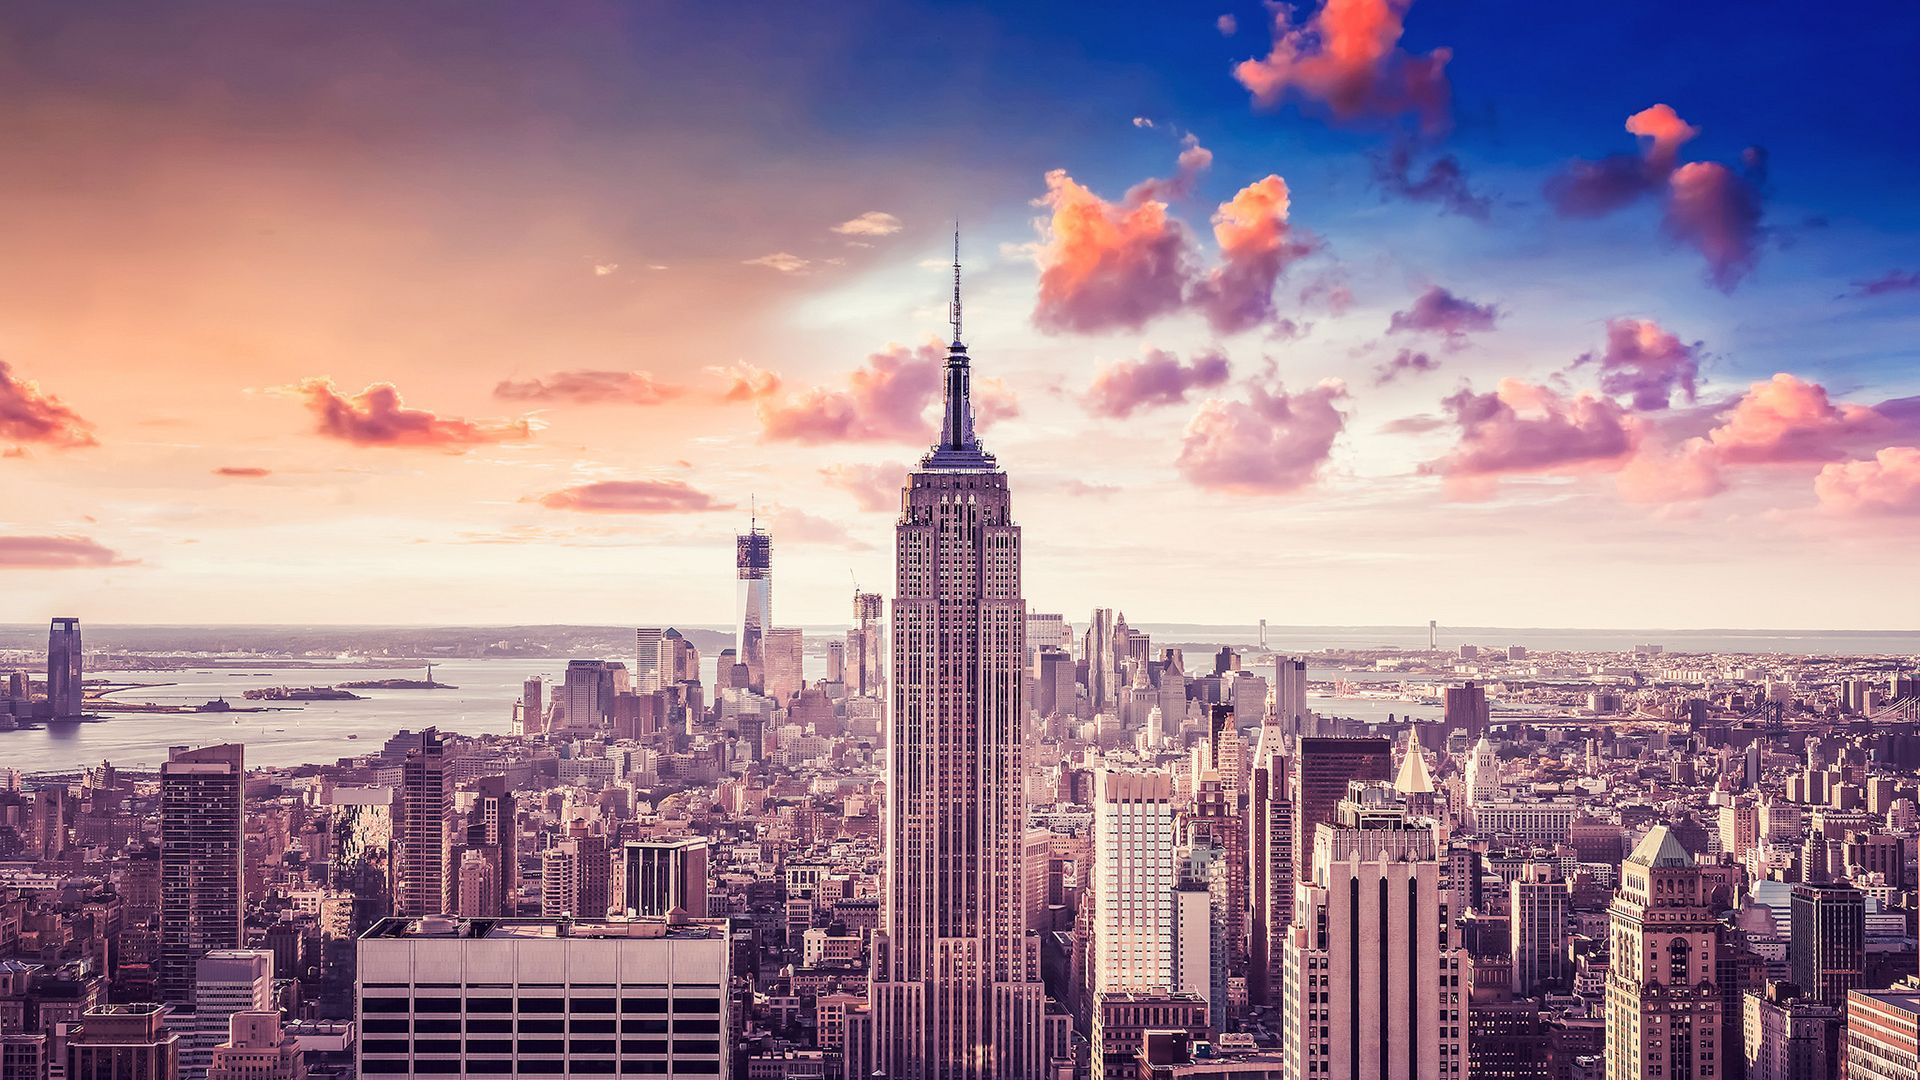 http://cdn.wonderfulengineering.com/wp-content/uploads/2015/04/new-york-wallpaper-22.jpg